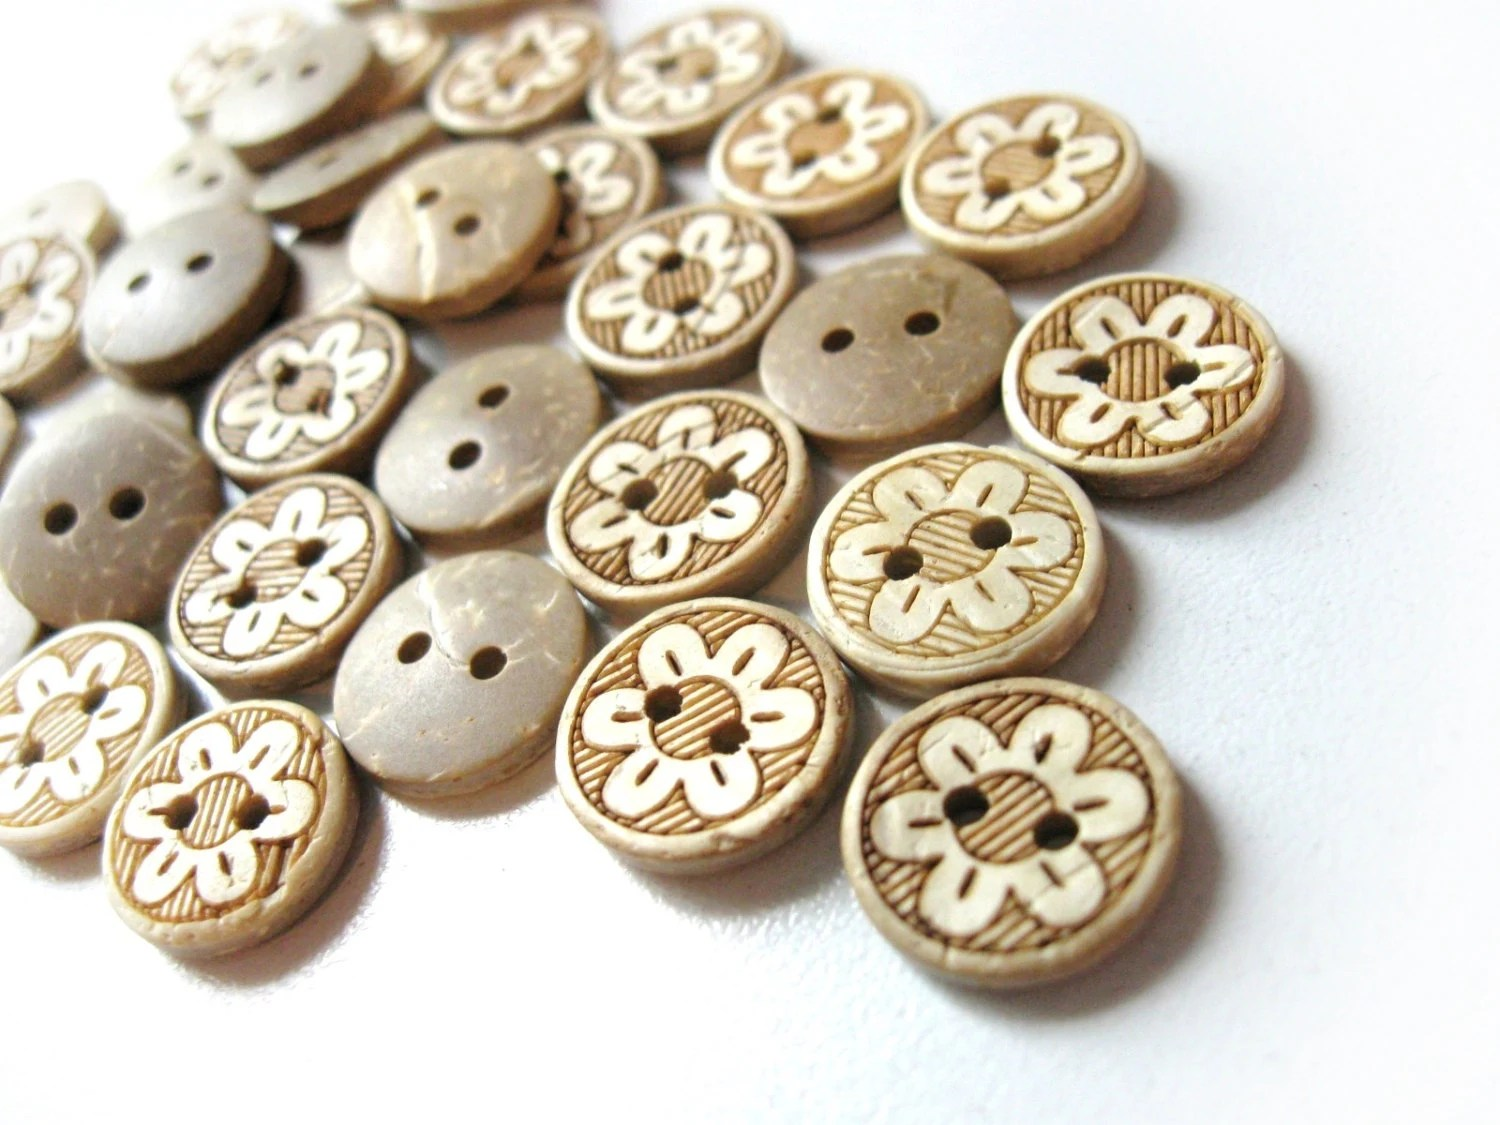 10 Coconut Shell Buttons 13mm - Daisy Flower (BC611B) - AnnyMayCraftSupplies